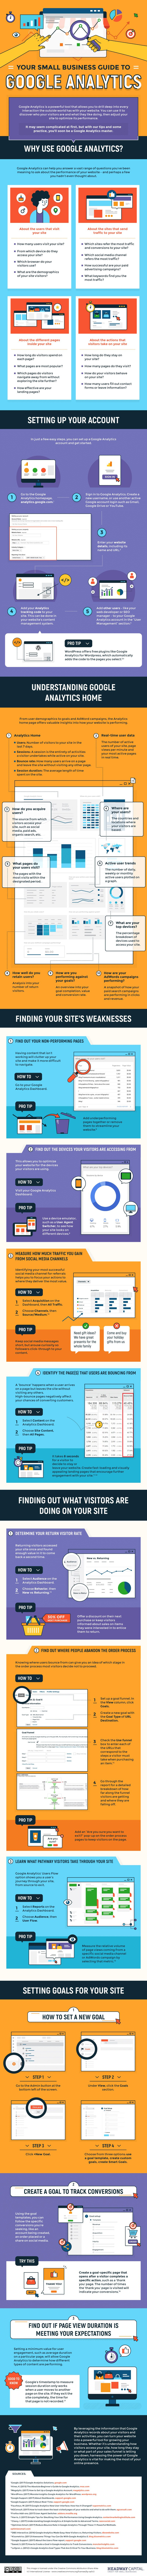 How to Use Google Analytics to Improve Your Website & Marketing Strategy [Infographic]